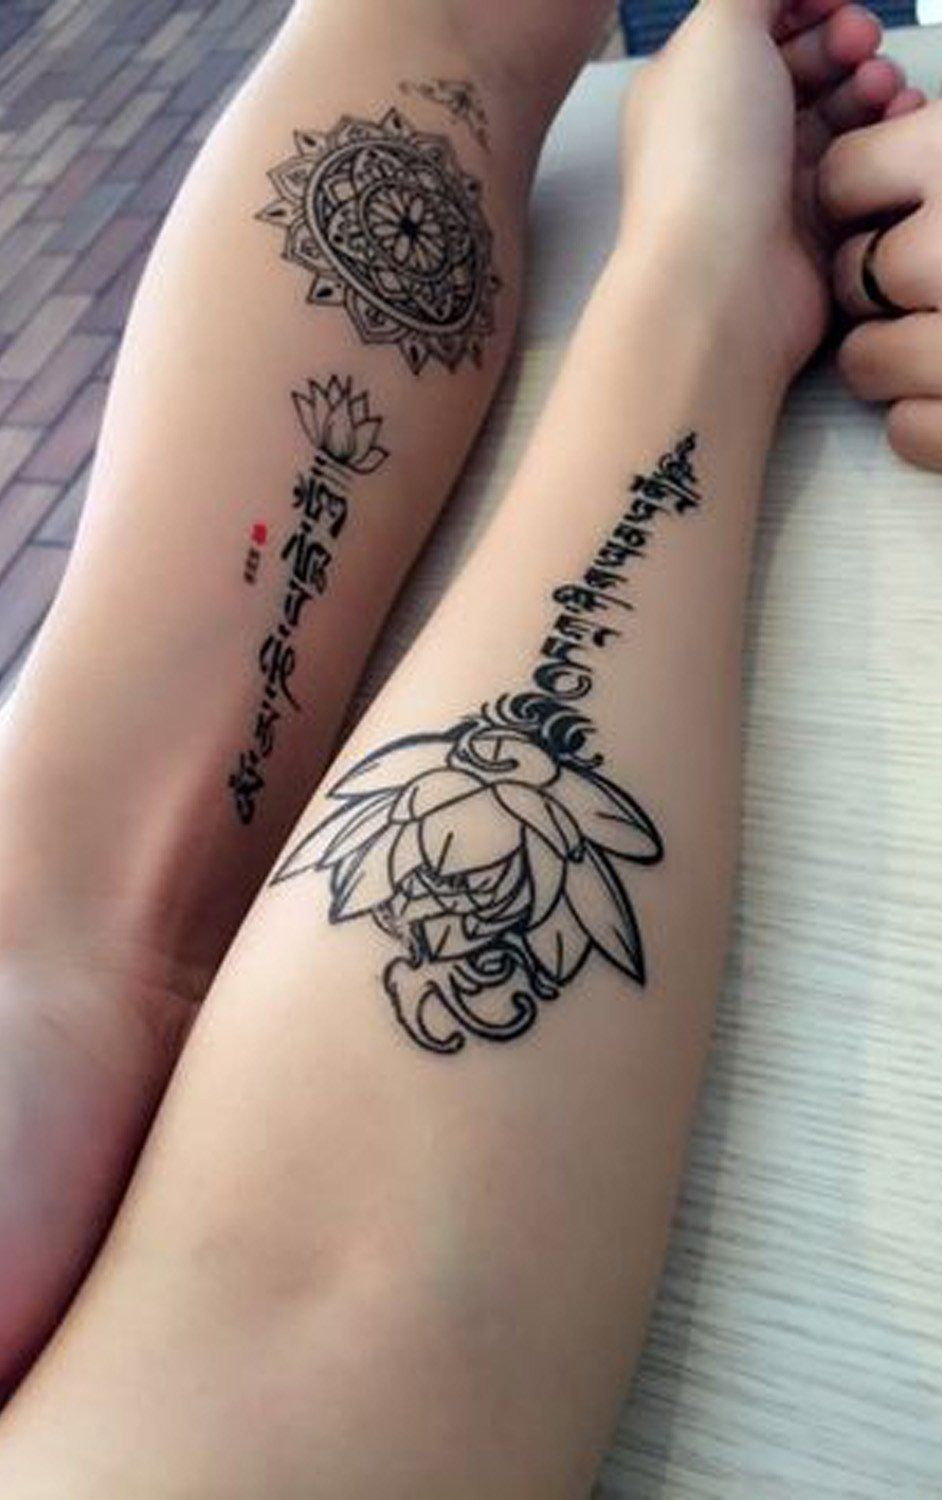 100 most popular lotus tattoos ideas for women wrist tattoo lotus wrist tattoo at mybodiart izmirmasajfo Gallery